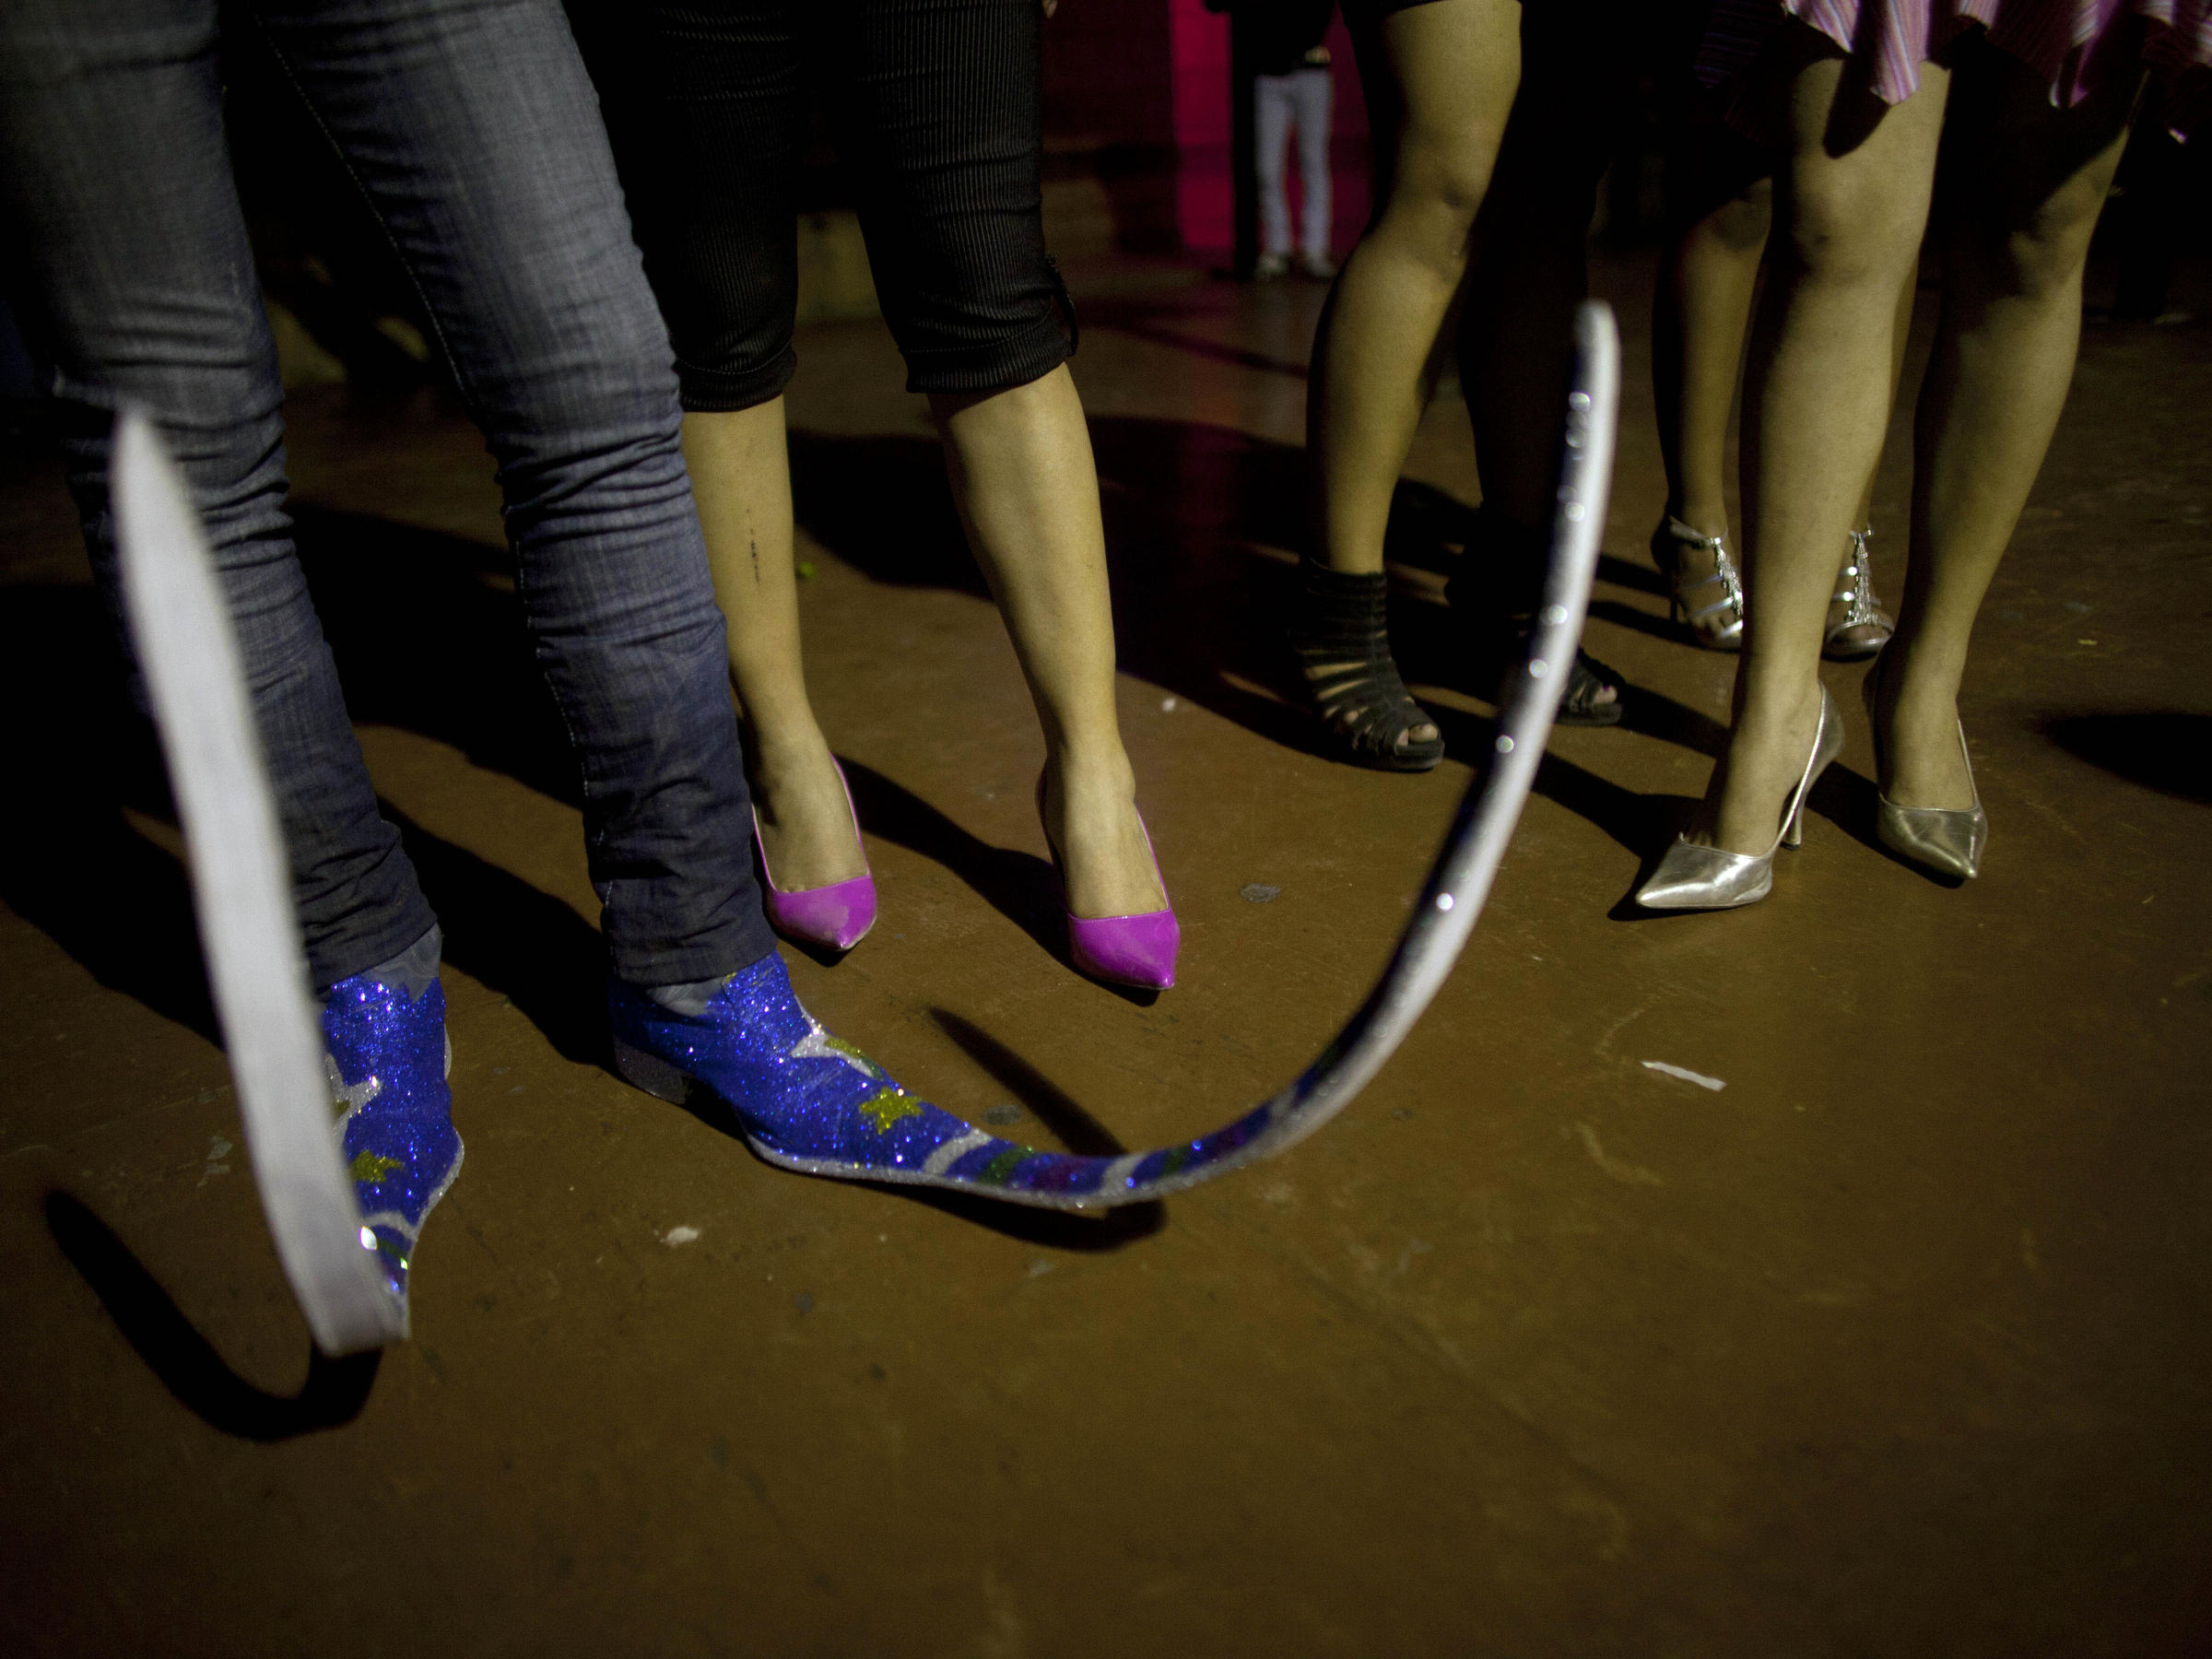 96a616c0f0 A man wearing his extra long pointy boots stands next to women at a  nightclub in Matehuala